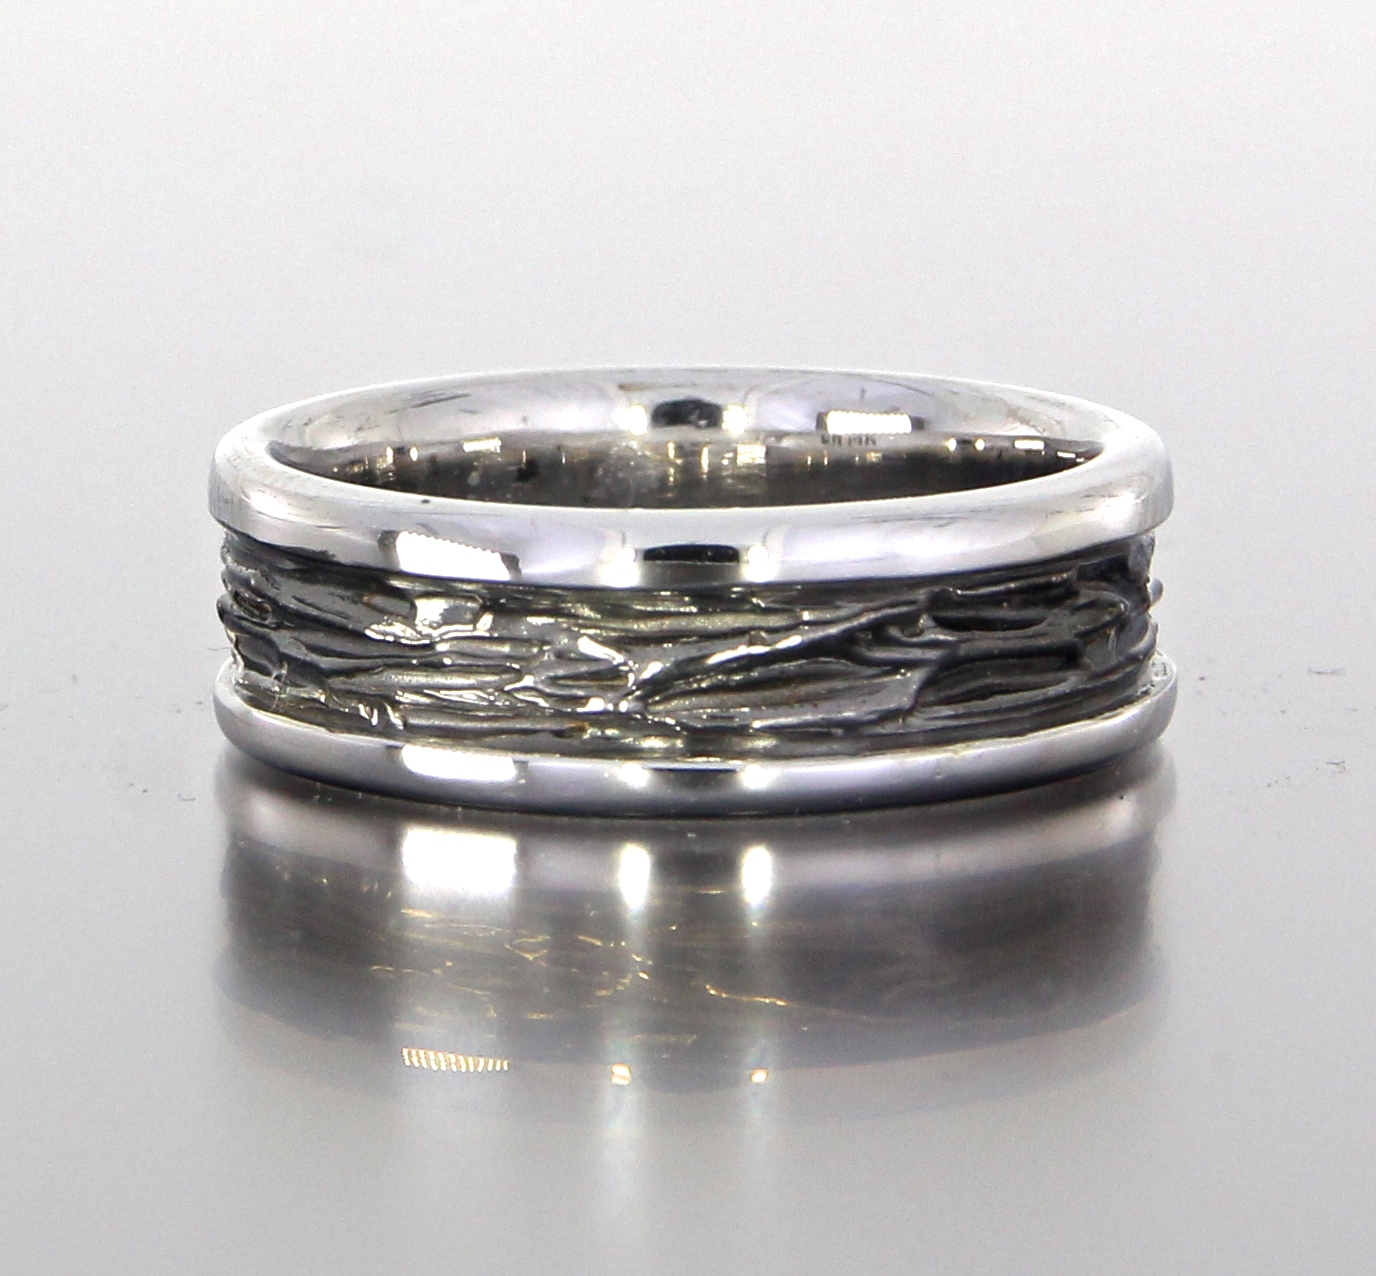 unique-mens-textured-wedding-band-black-band-gun-metal-white-gold-modern-design-craft-revival-jewelry-store-grand-rapids